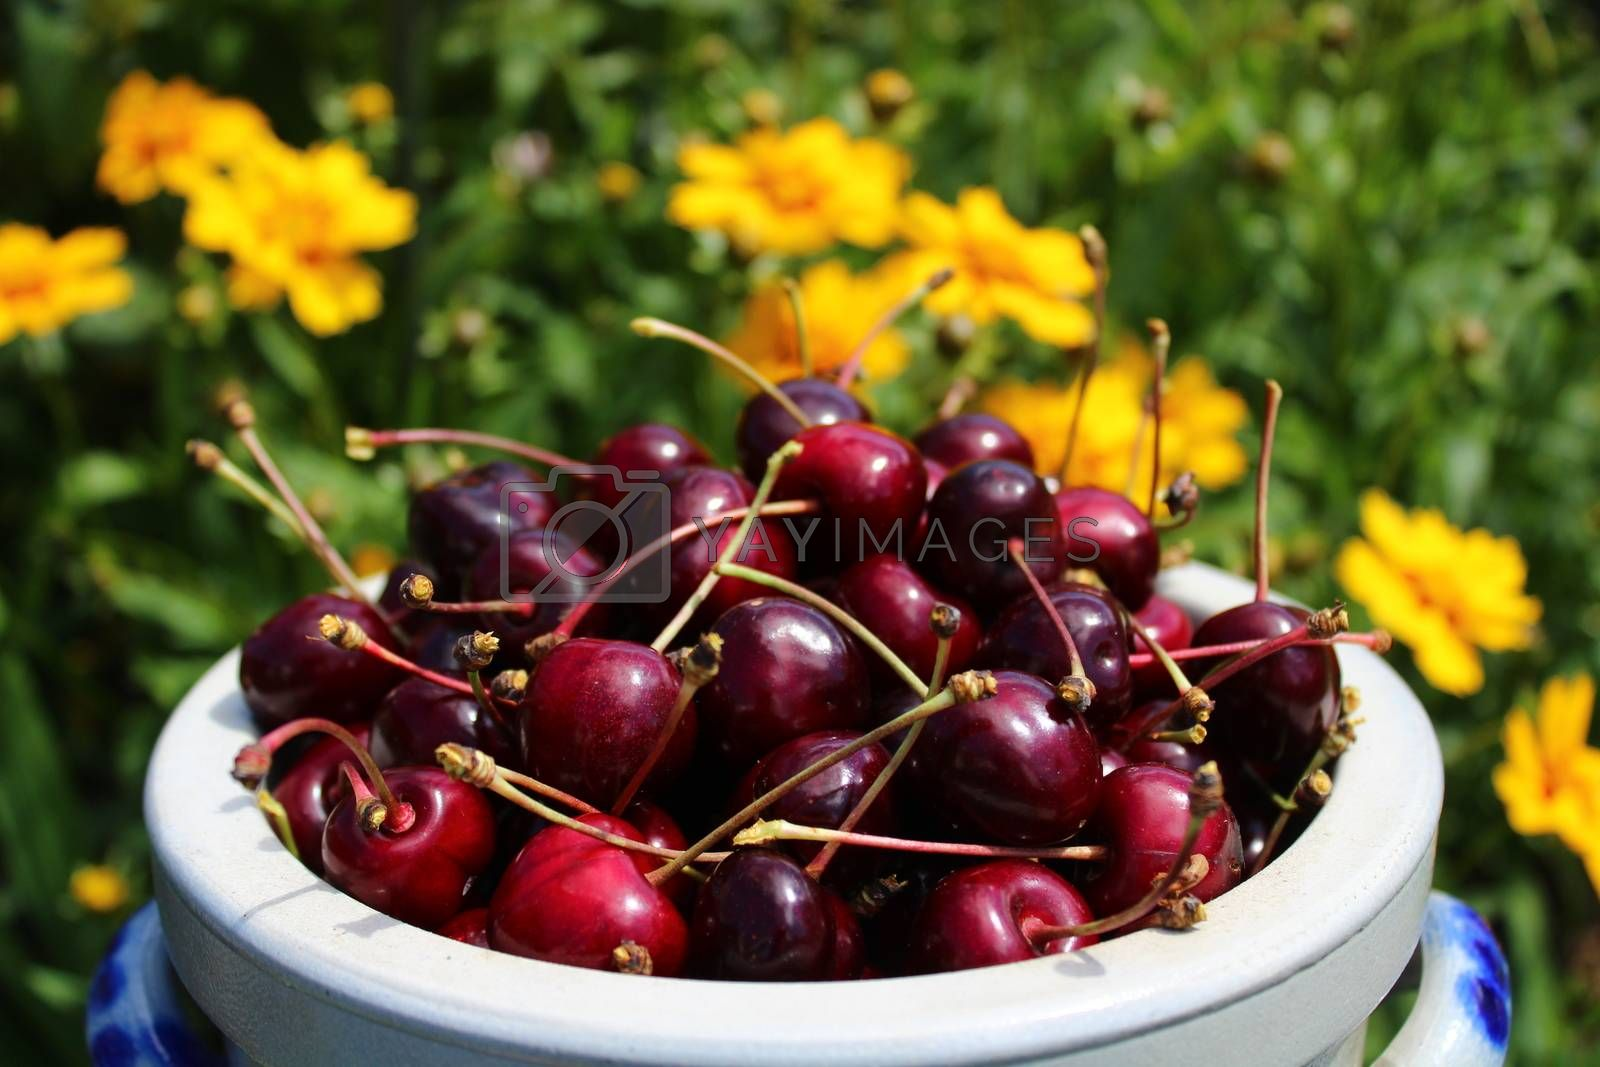 Royalty free image of harvested cherries in the garden by martina_unbehauen